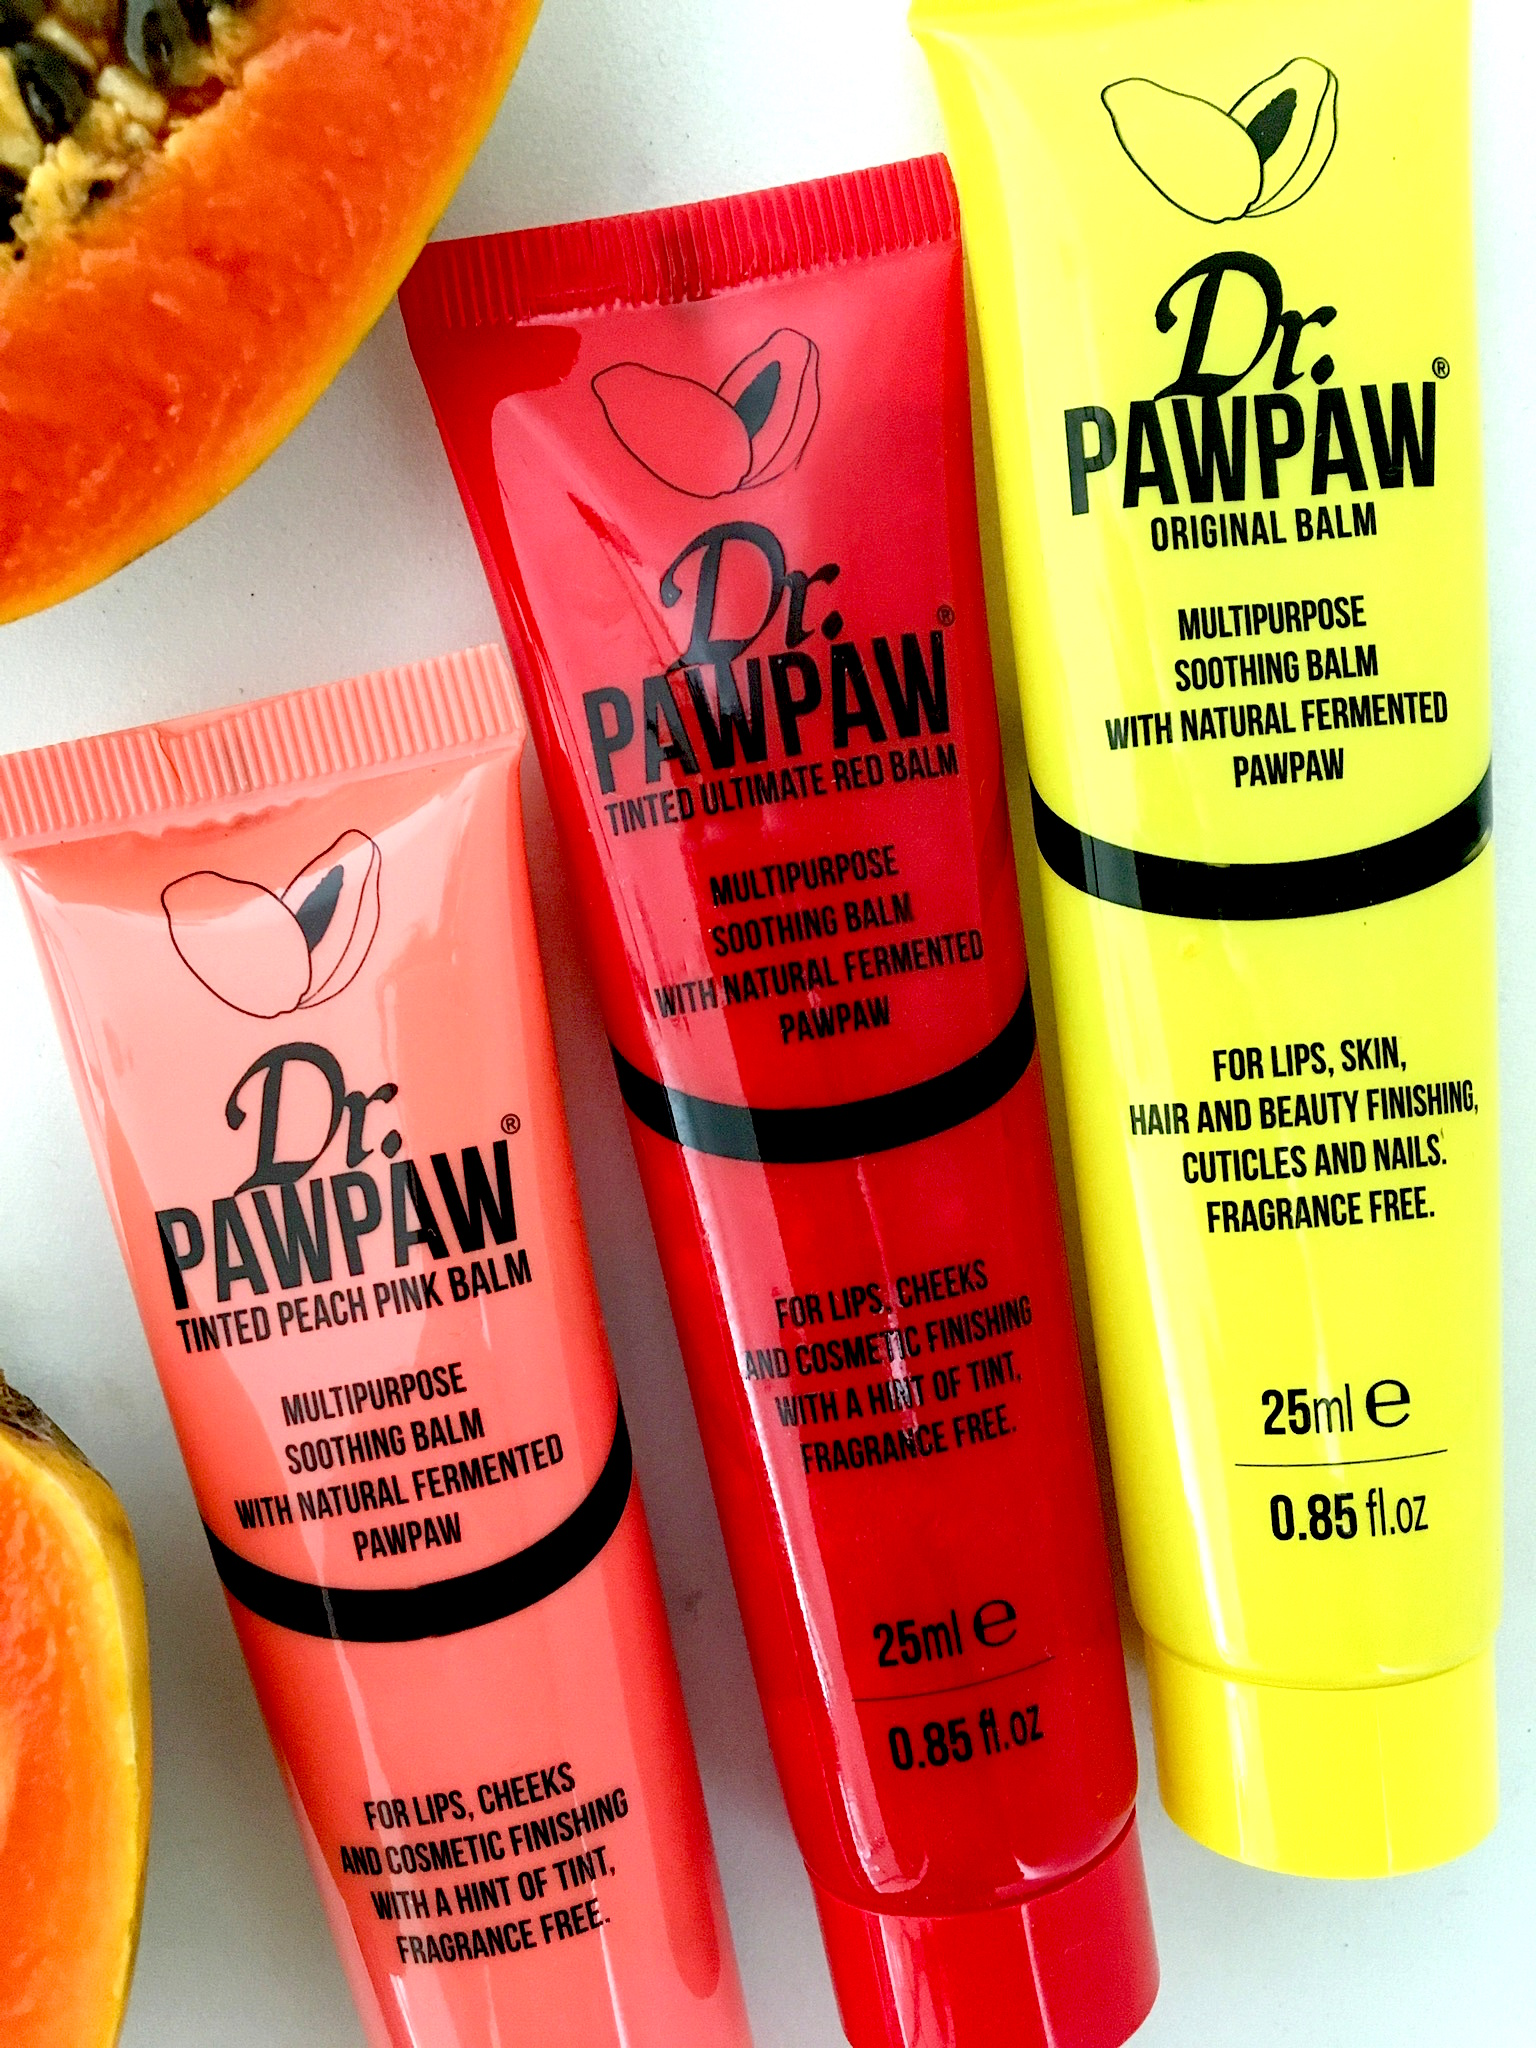 Dr Pawpaw hold 2